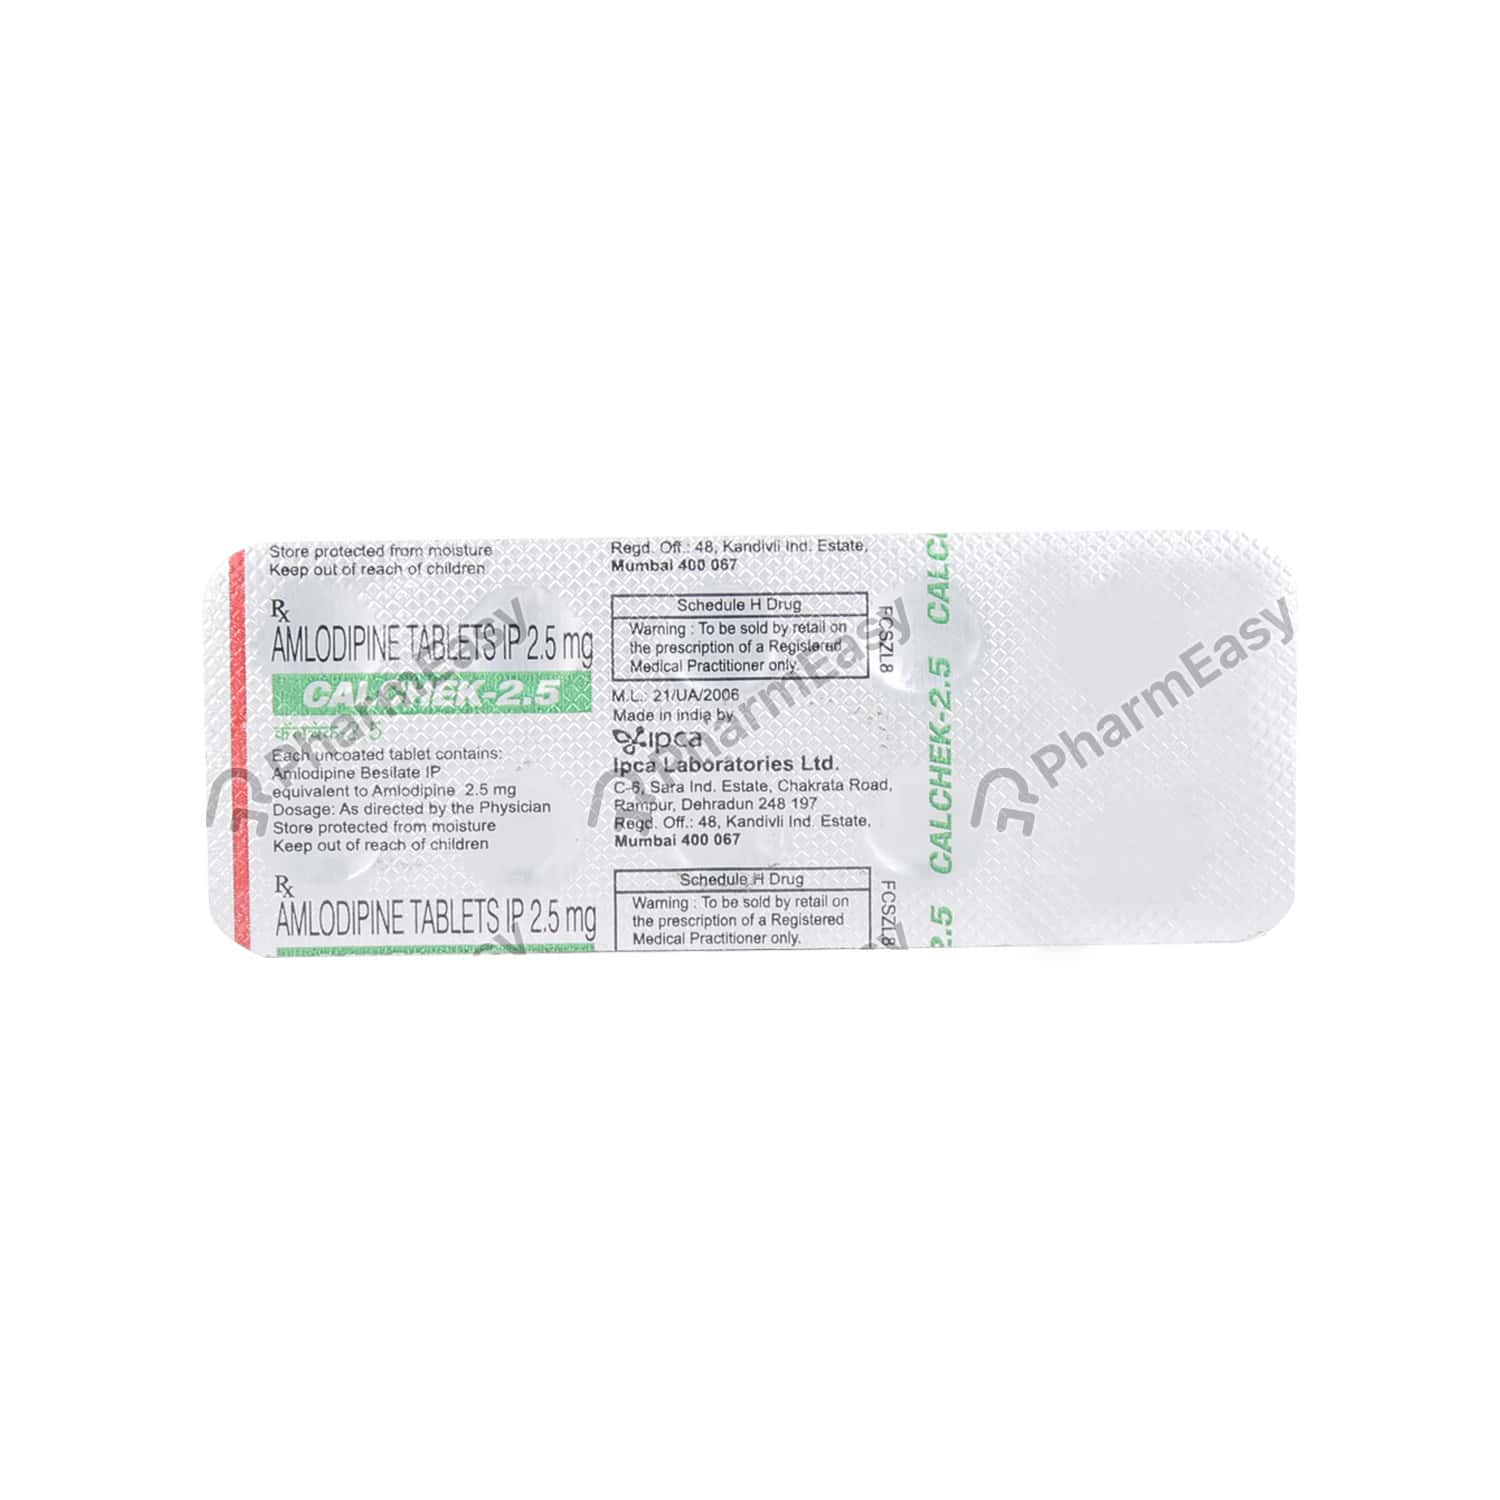 Calchek 2.5mg Tablet